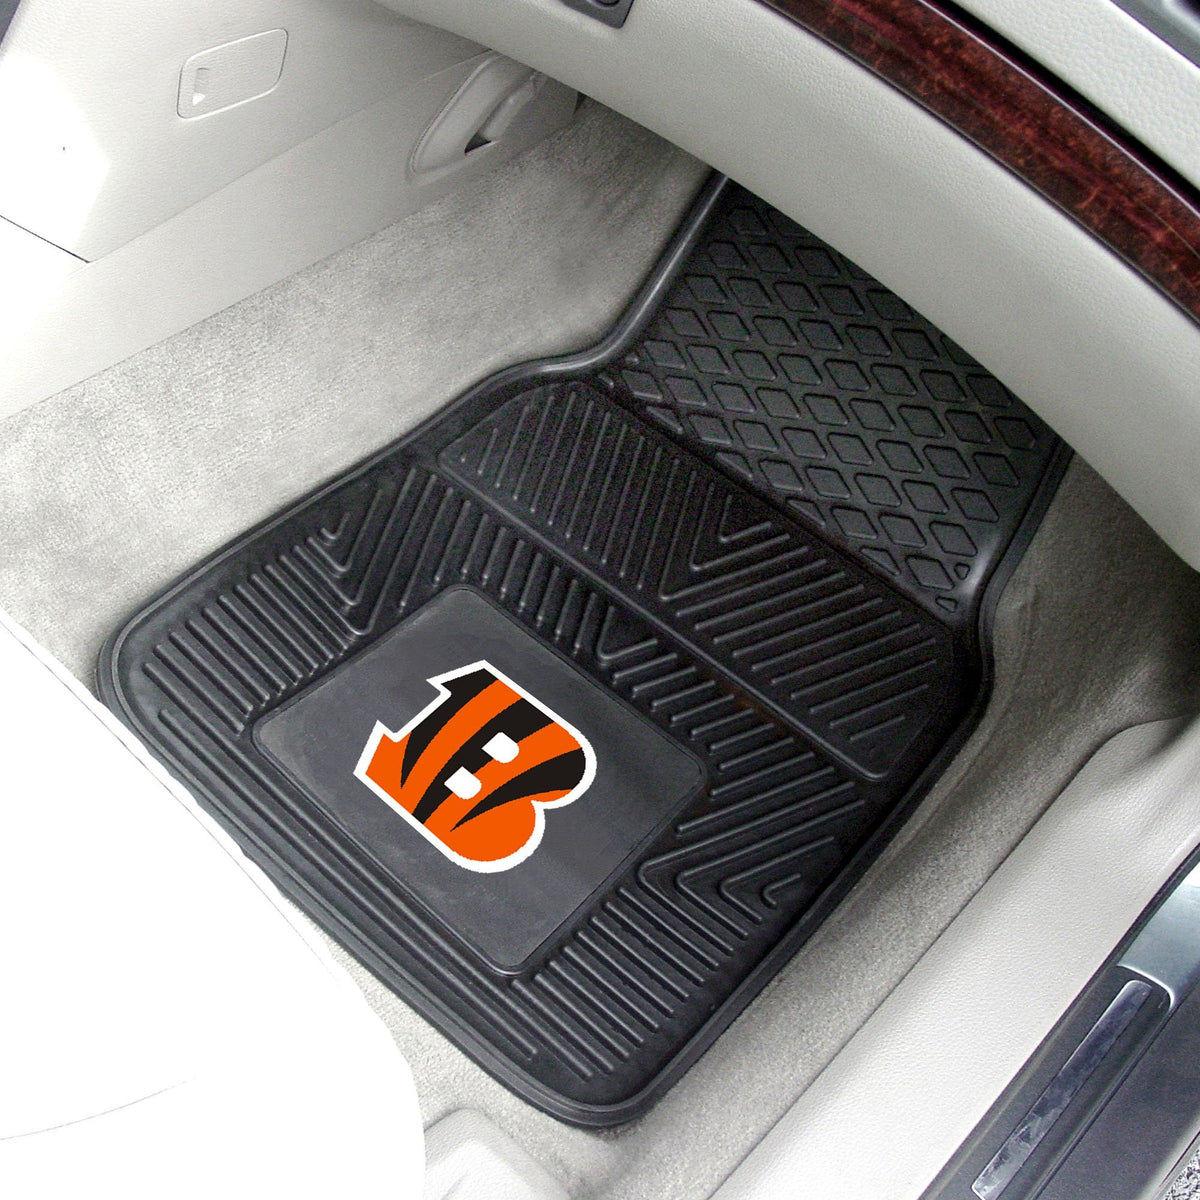 NFL - 2-pc Vinyl Car Mat Set NFL Mats, Front Car Mats, 2-pc Vinyl Car Mat Set, NFL, Auto Fan Mats Cincinnati Bengals